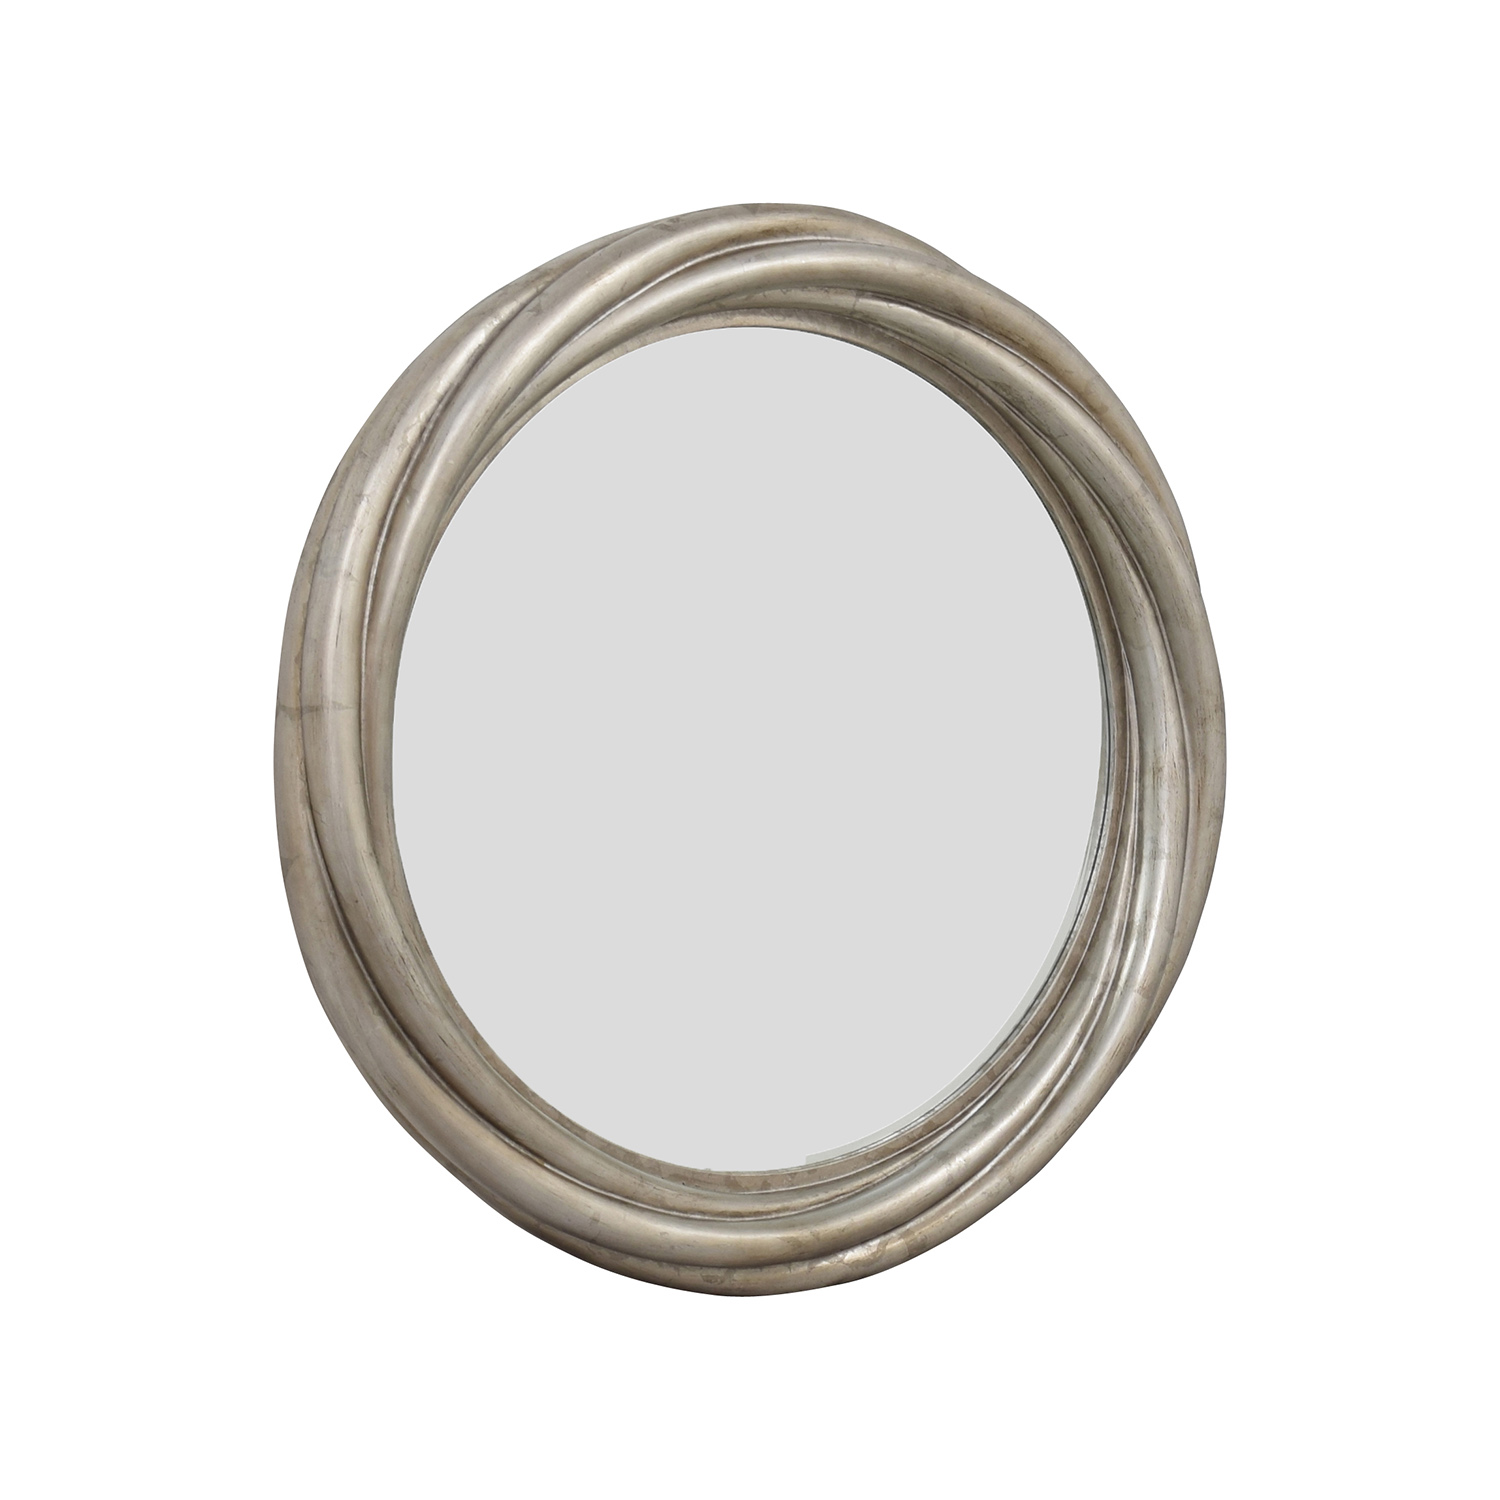 Thomasville Thomasville Bogart Collection 47 Round Wall Mirror for sale